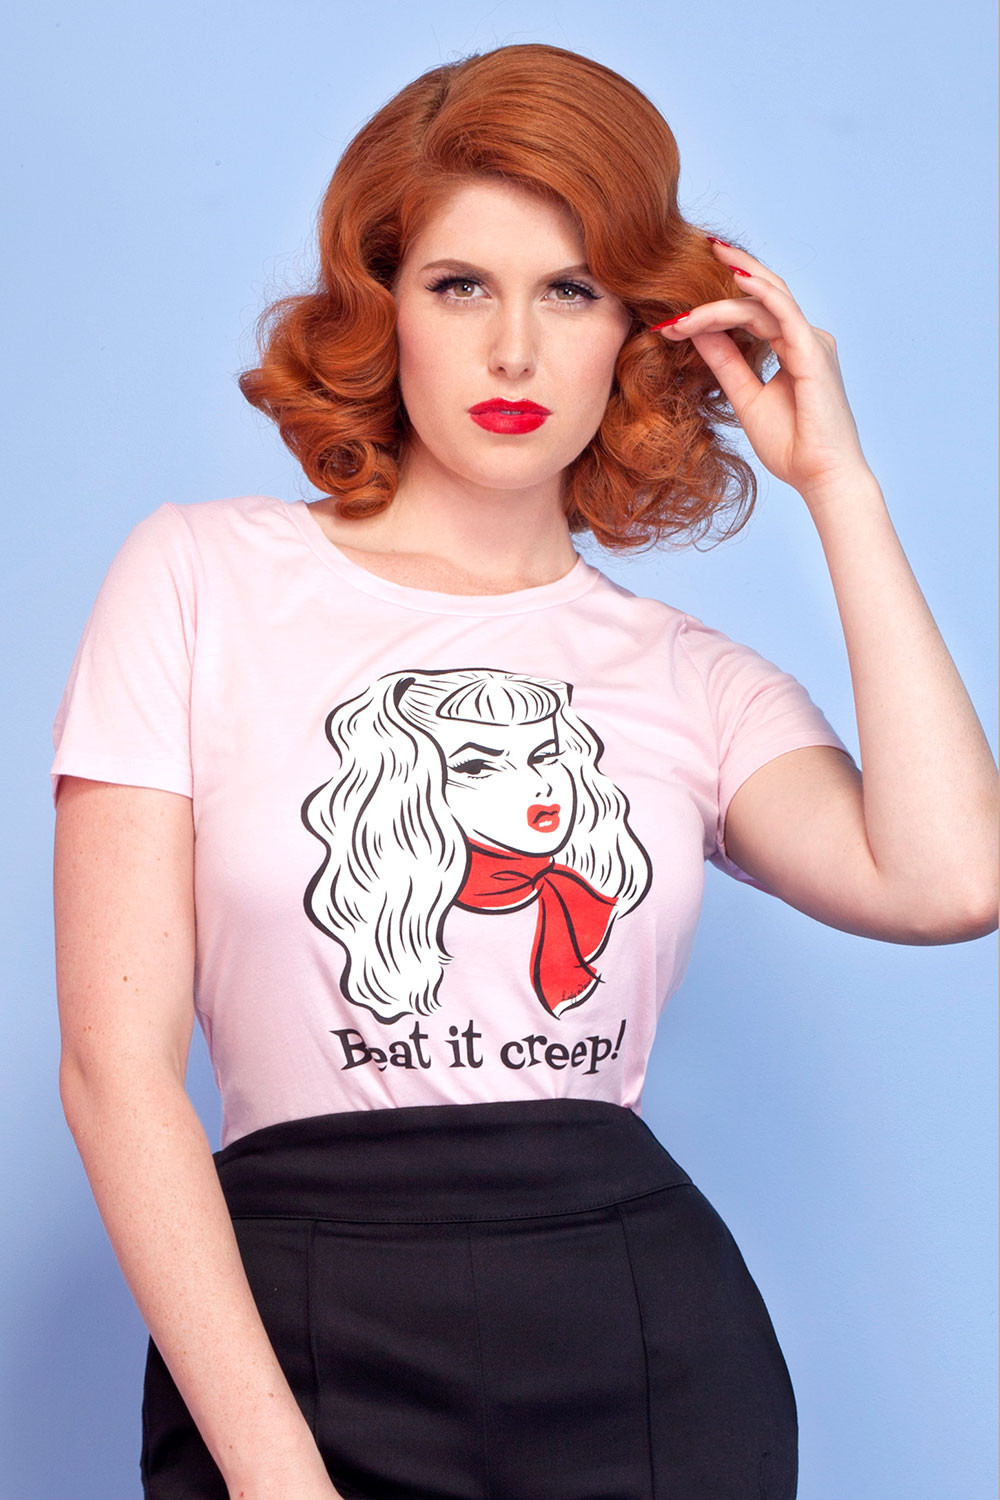 From pinupgirlclothing.com